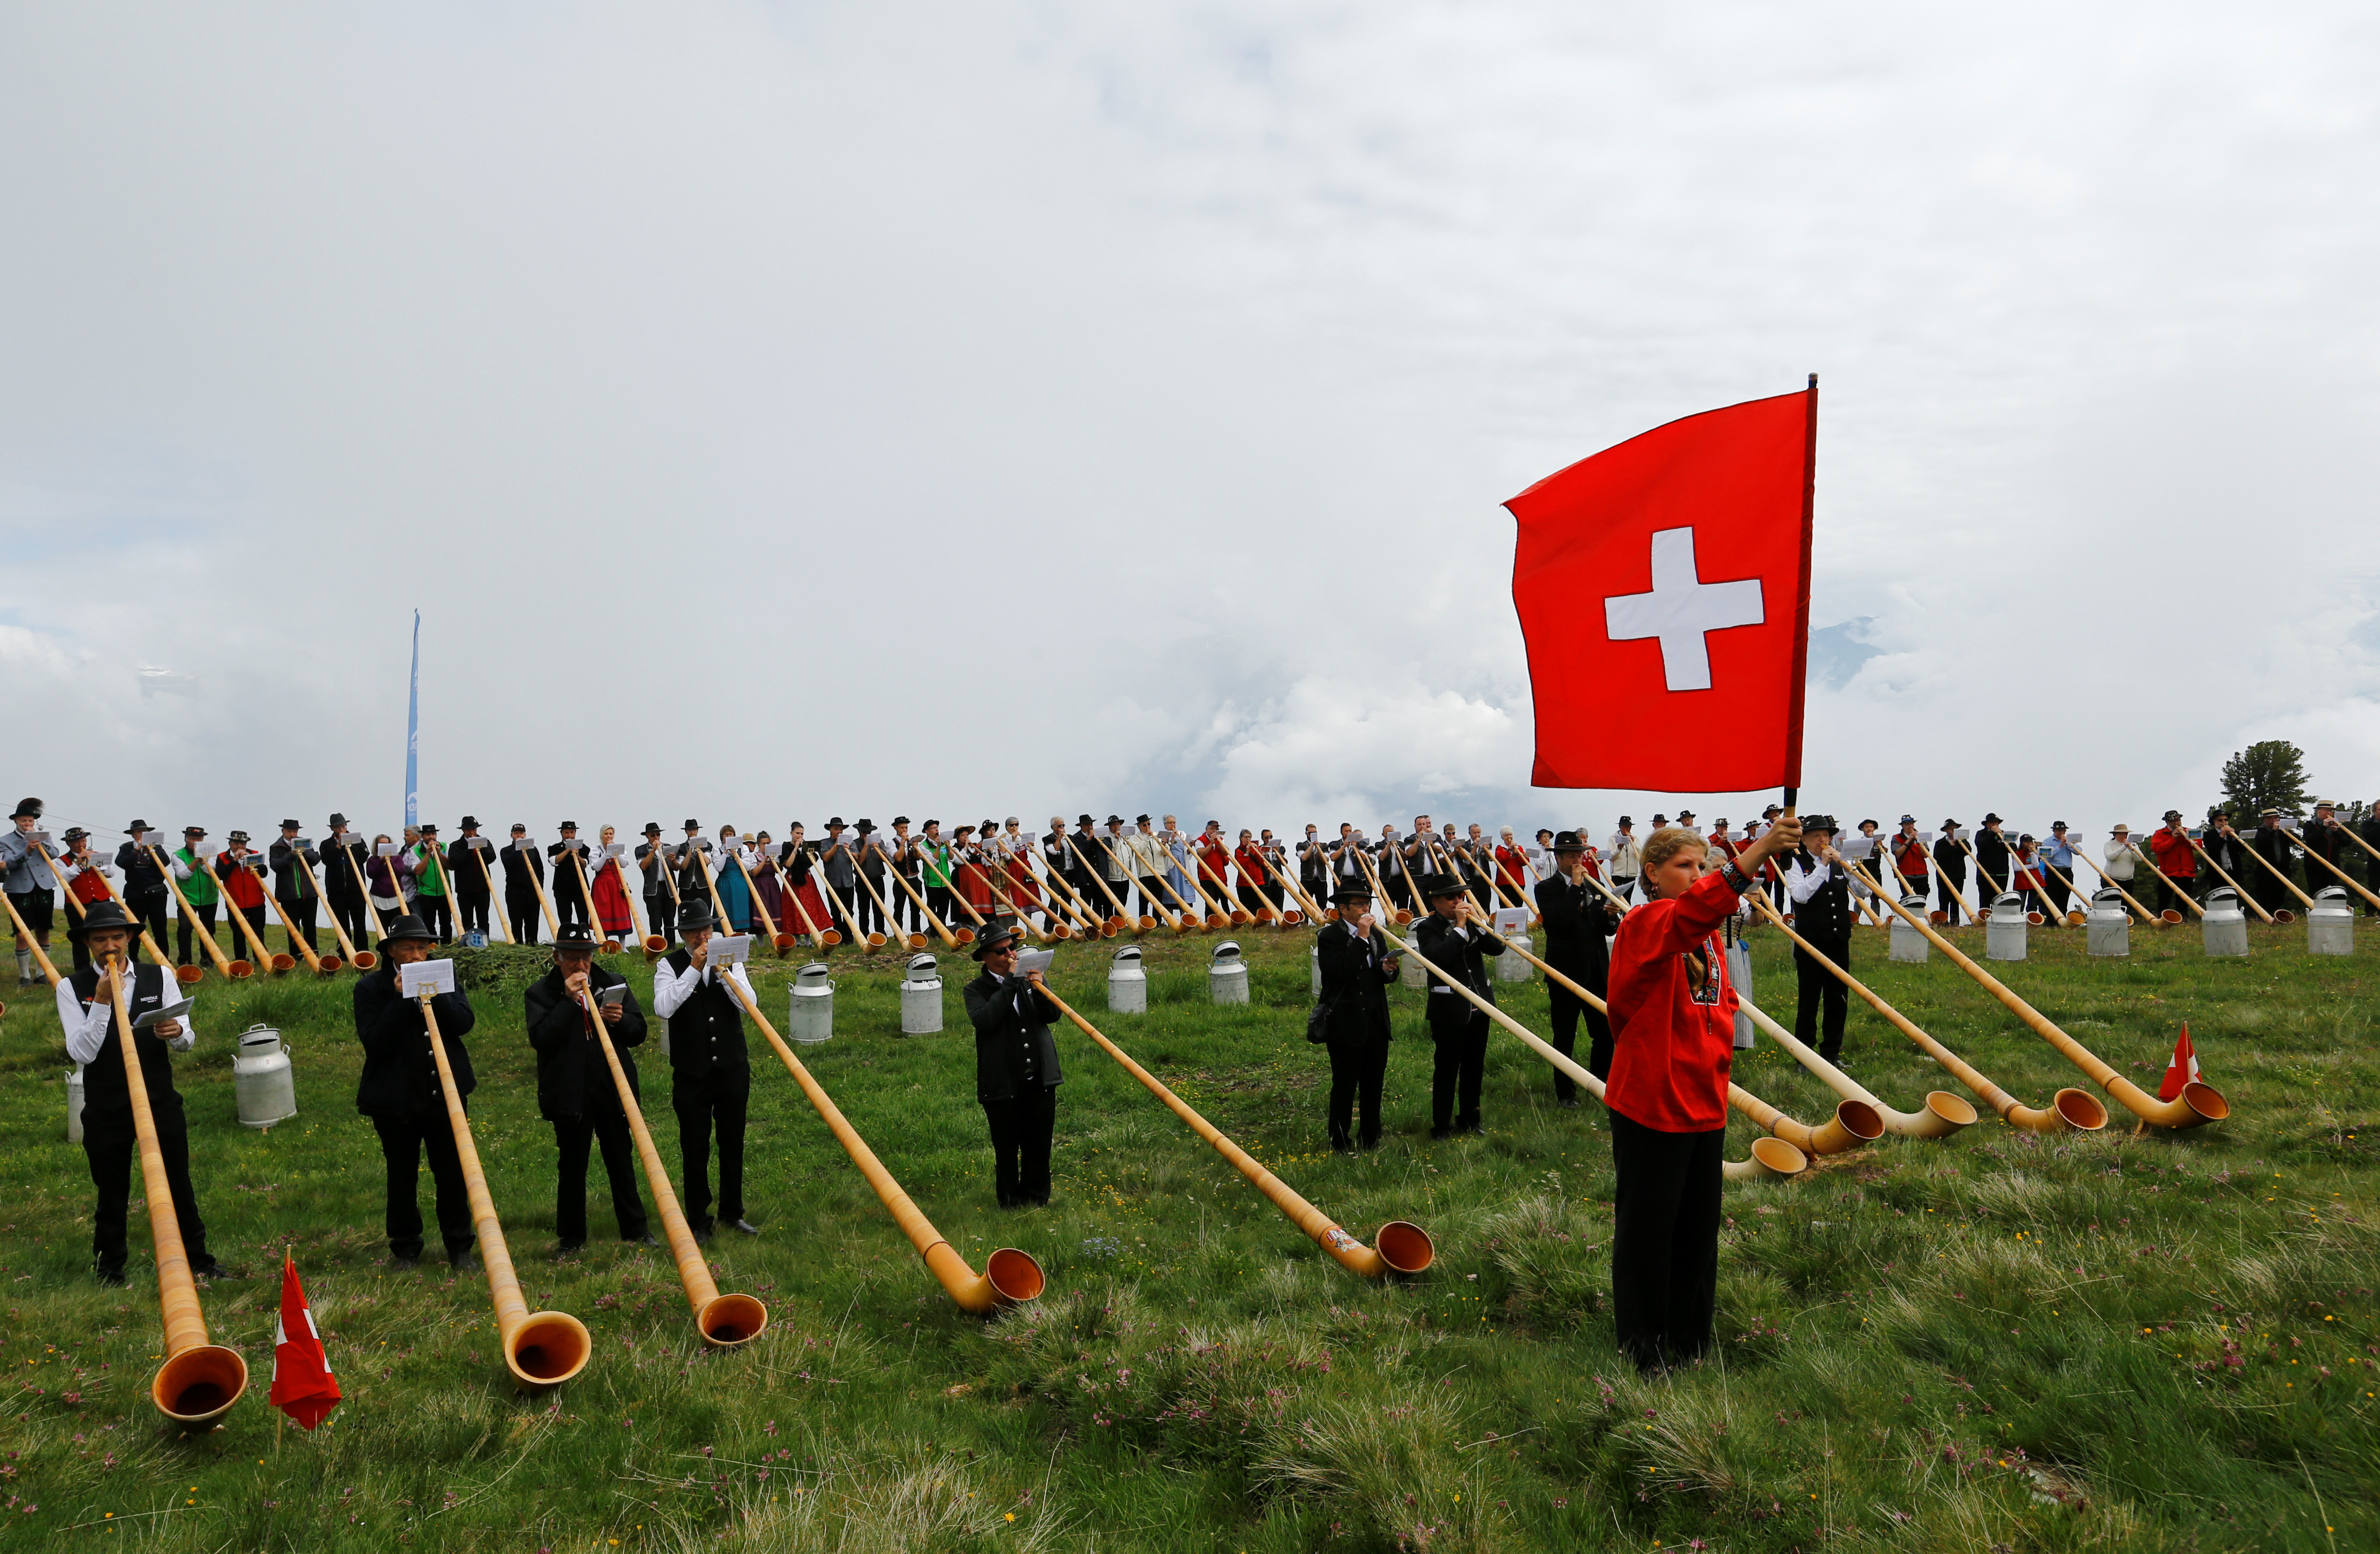 A flag thrower and alphorn blowers perform on the last day of the Alphorn International Festival on the alp of Tracouet in Nendaz